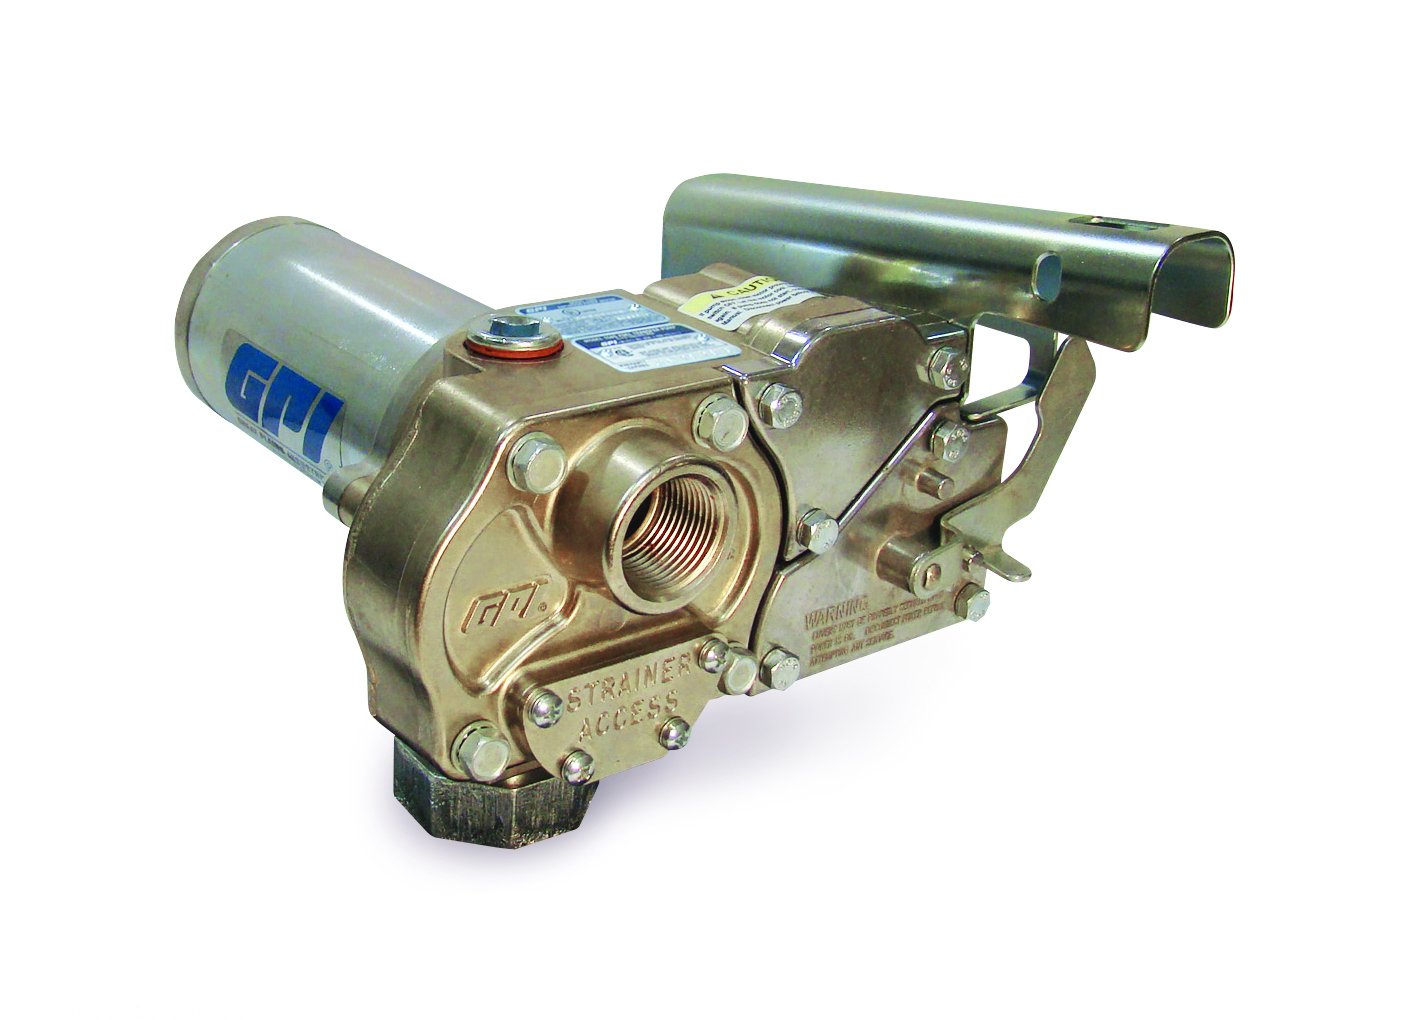 GPI 110700-01, M-150S-Methanol-PO Aluminum Fuel Transfer Pump, 15 GPM, 12-VDC, Spin Collar, Nickel Plated Housing, Accessories Sold Separately by GPI (Image #1)